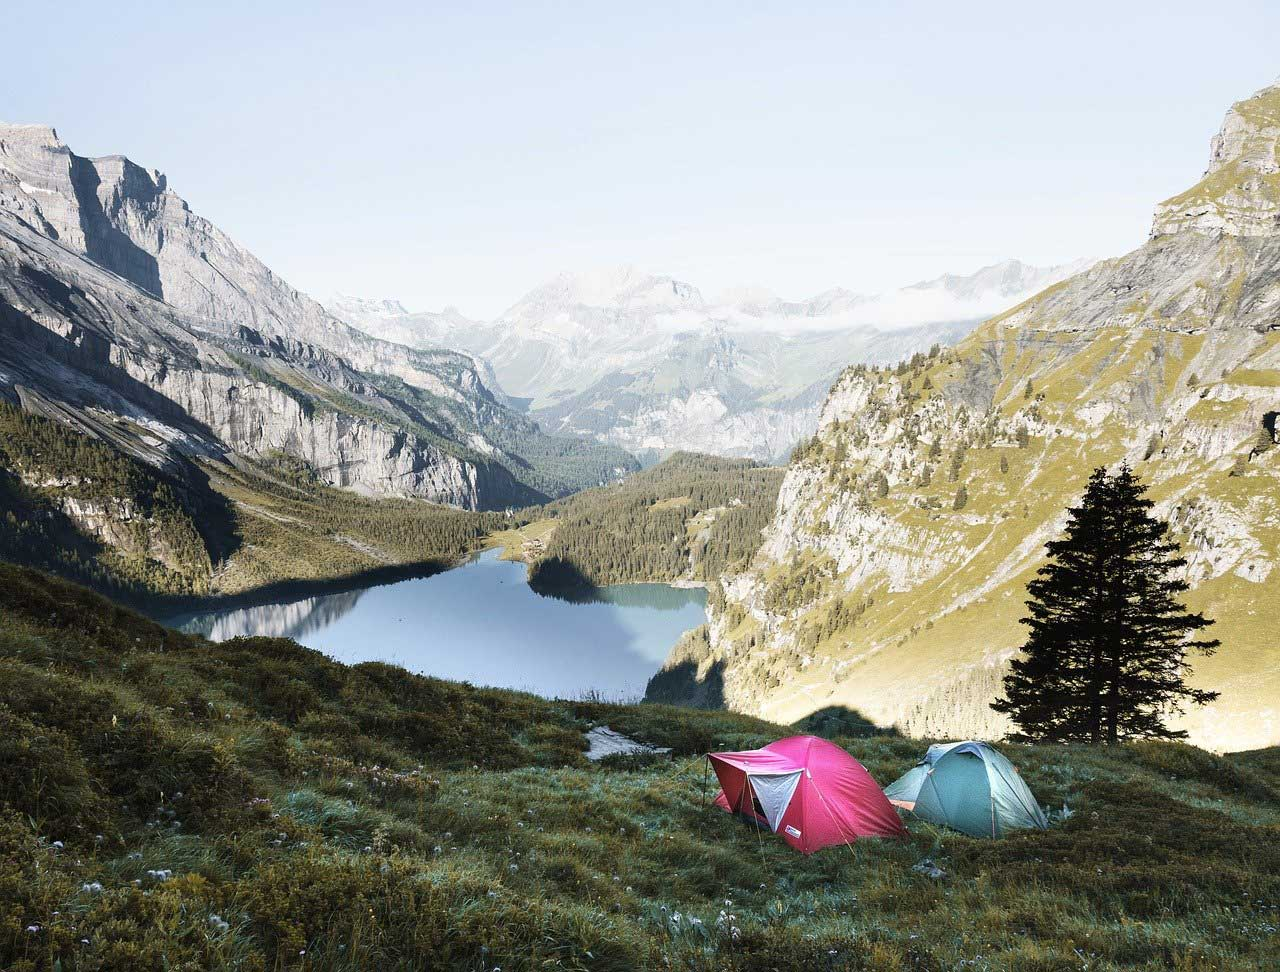 Camping Wochenende am See